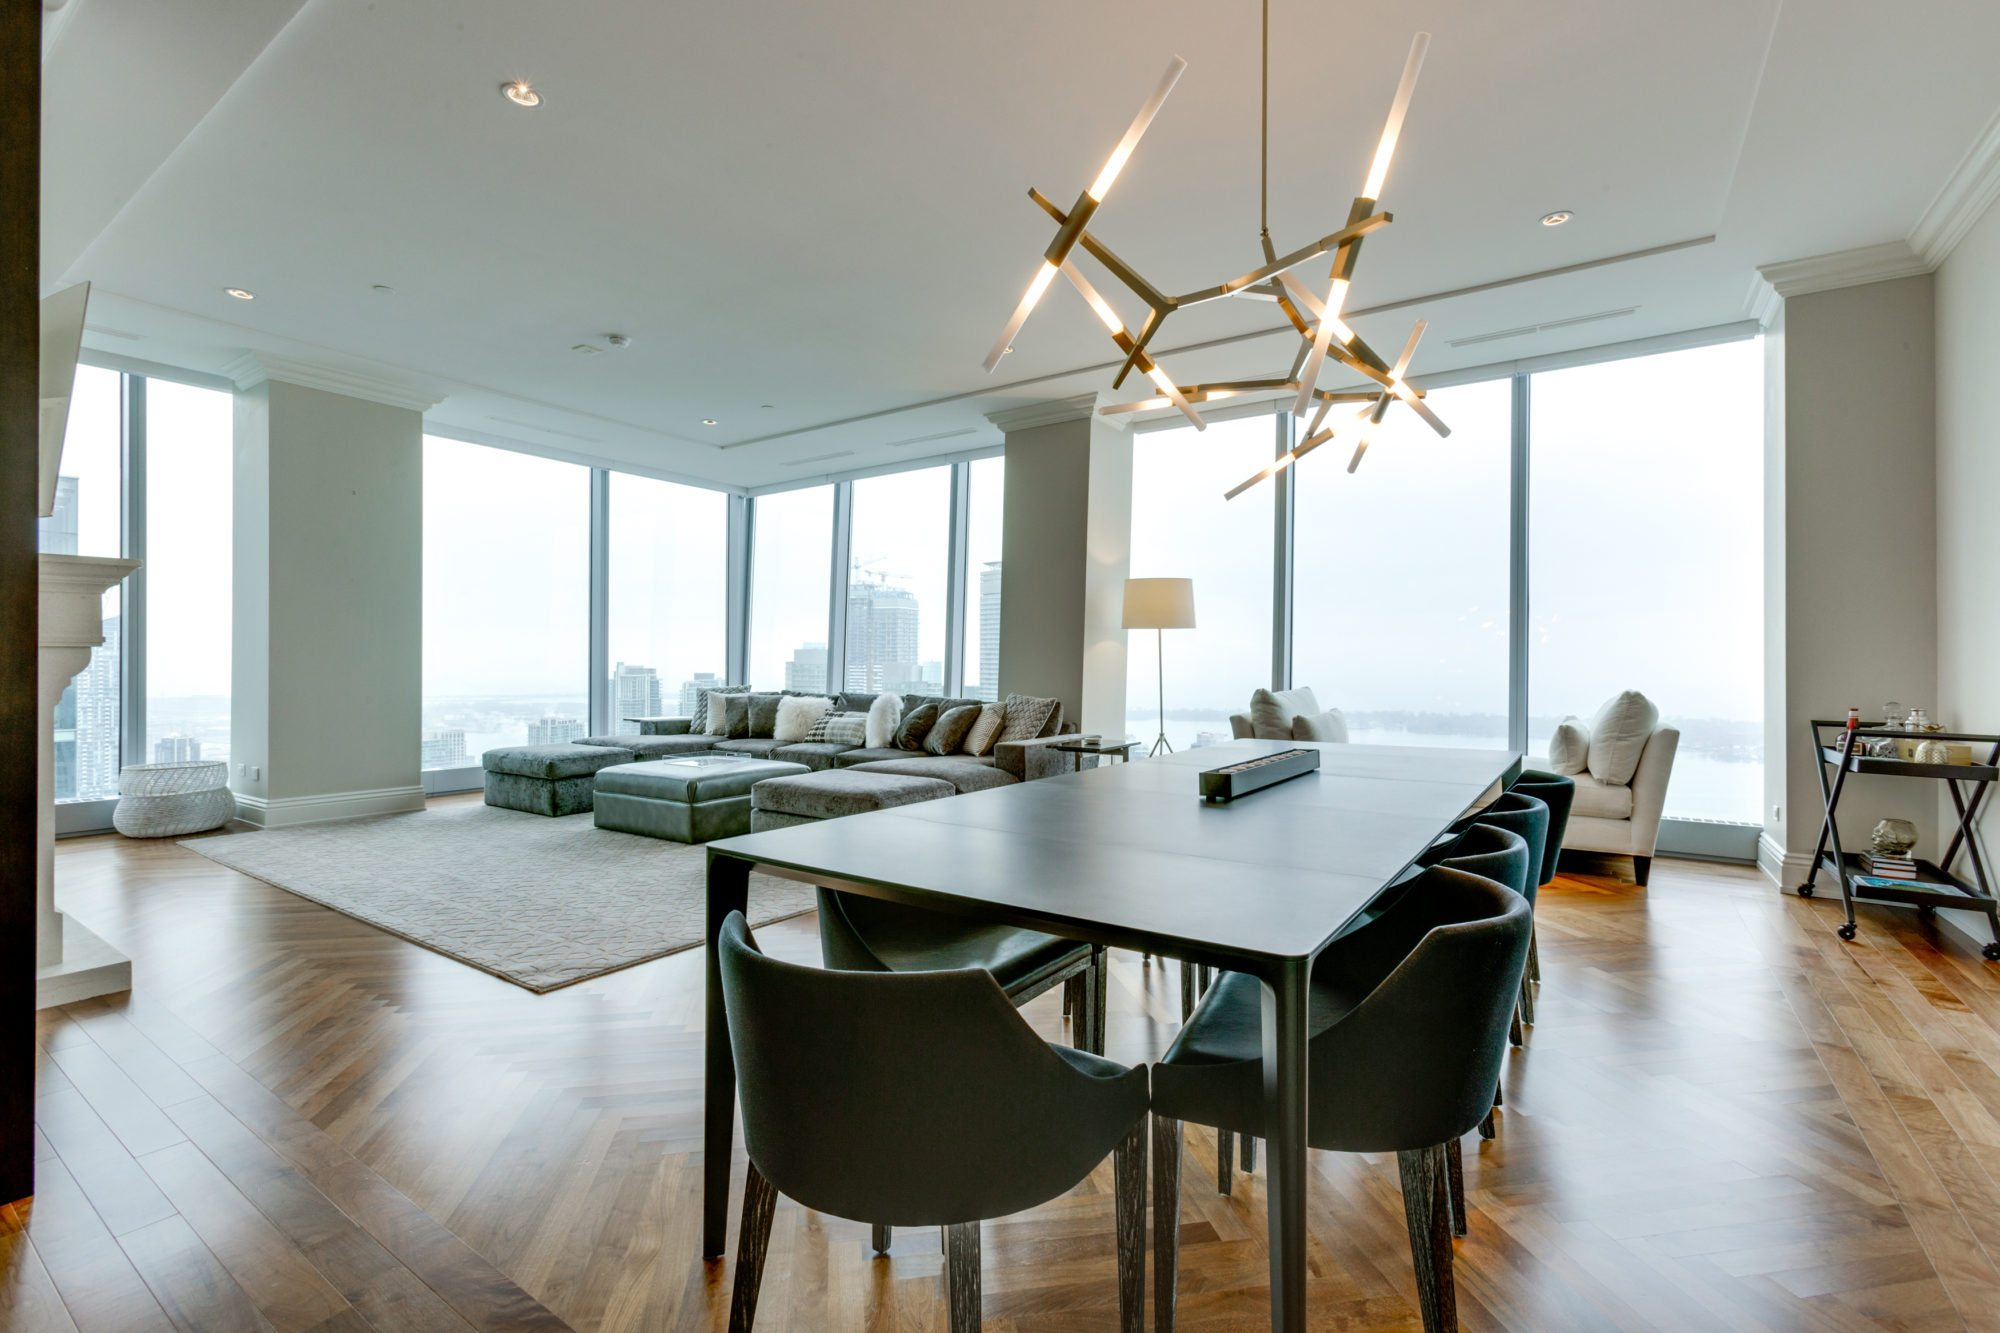 MODERN INTERIOR DESIGNERS modern interior designers Get To Know The Best Modern Interior Designers In Toronto! Ritz Carlton Residences by Harrison Fae Design